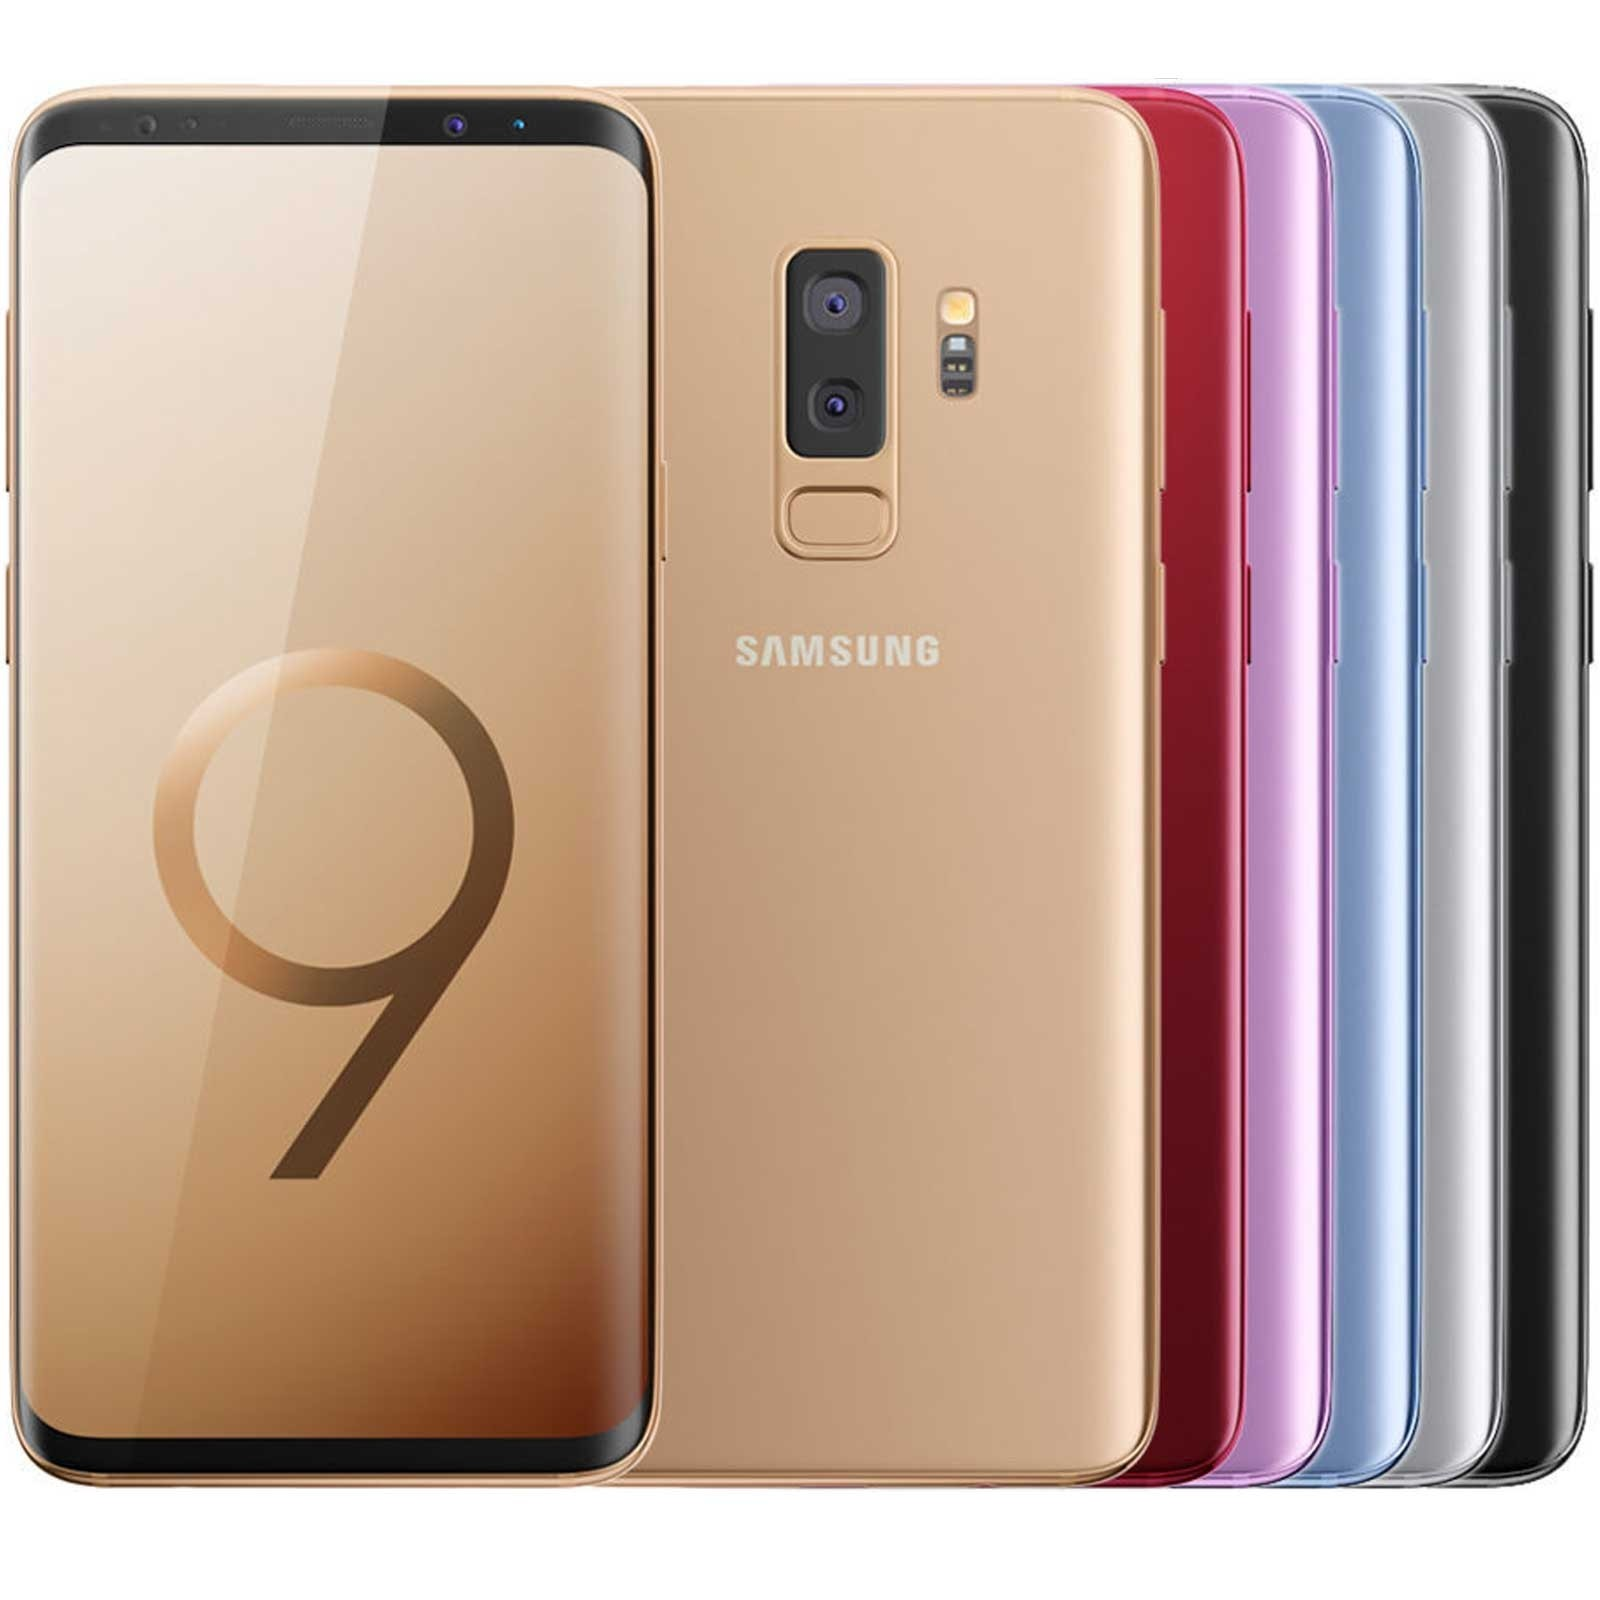 Samsung Galaxy S9 Plus - SM-G965F - European Version - Unlocked - Refurbished Samsung - 1